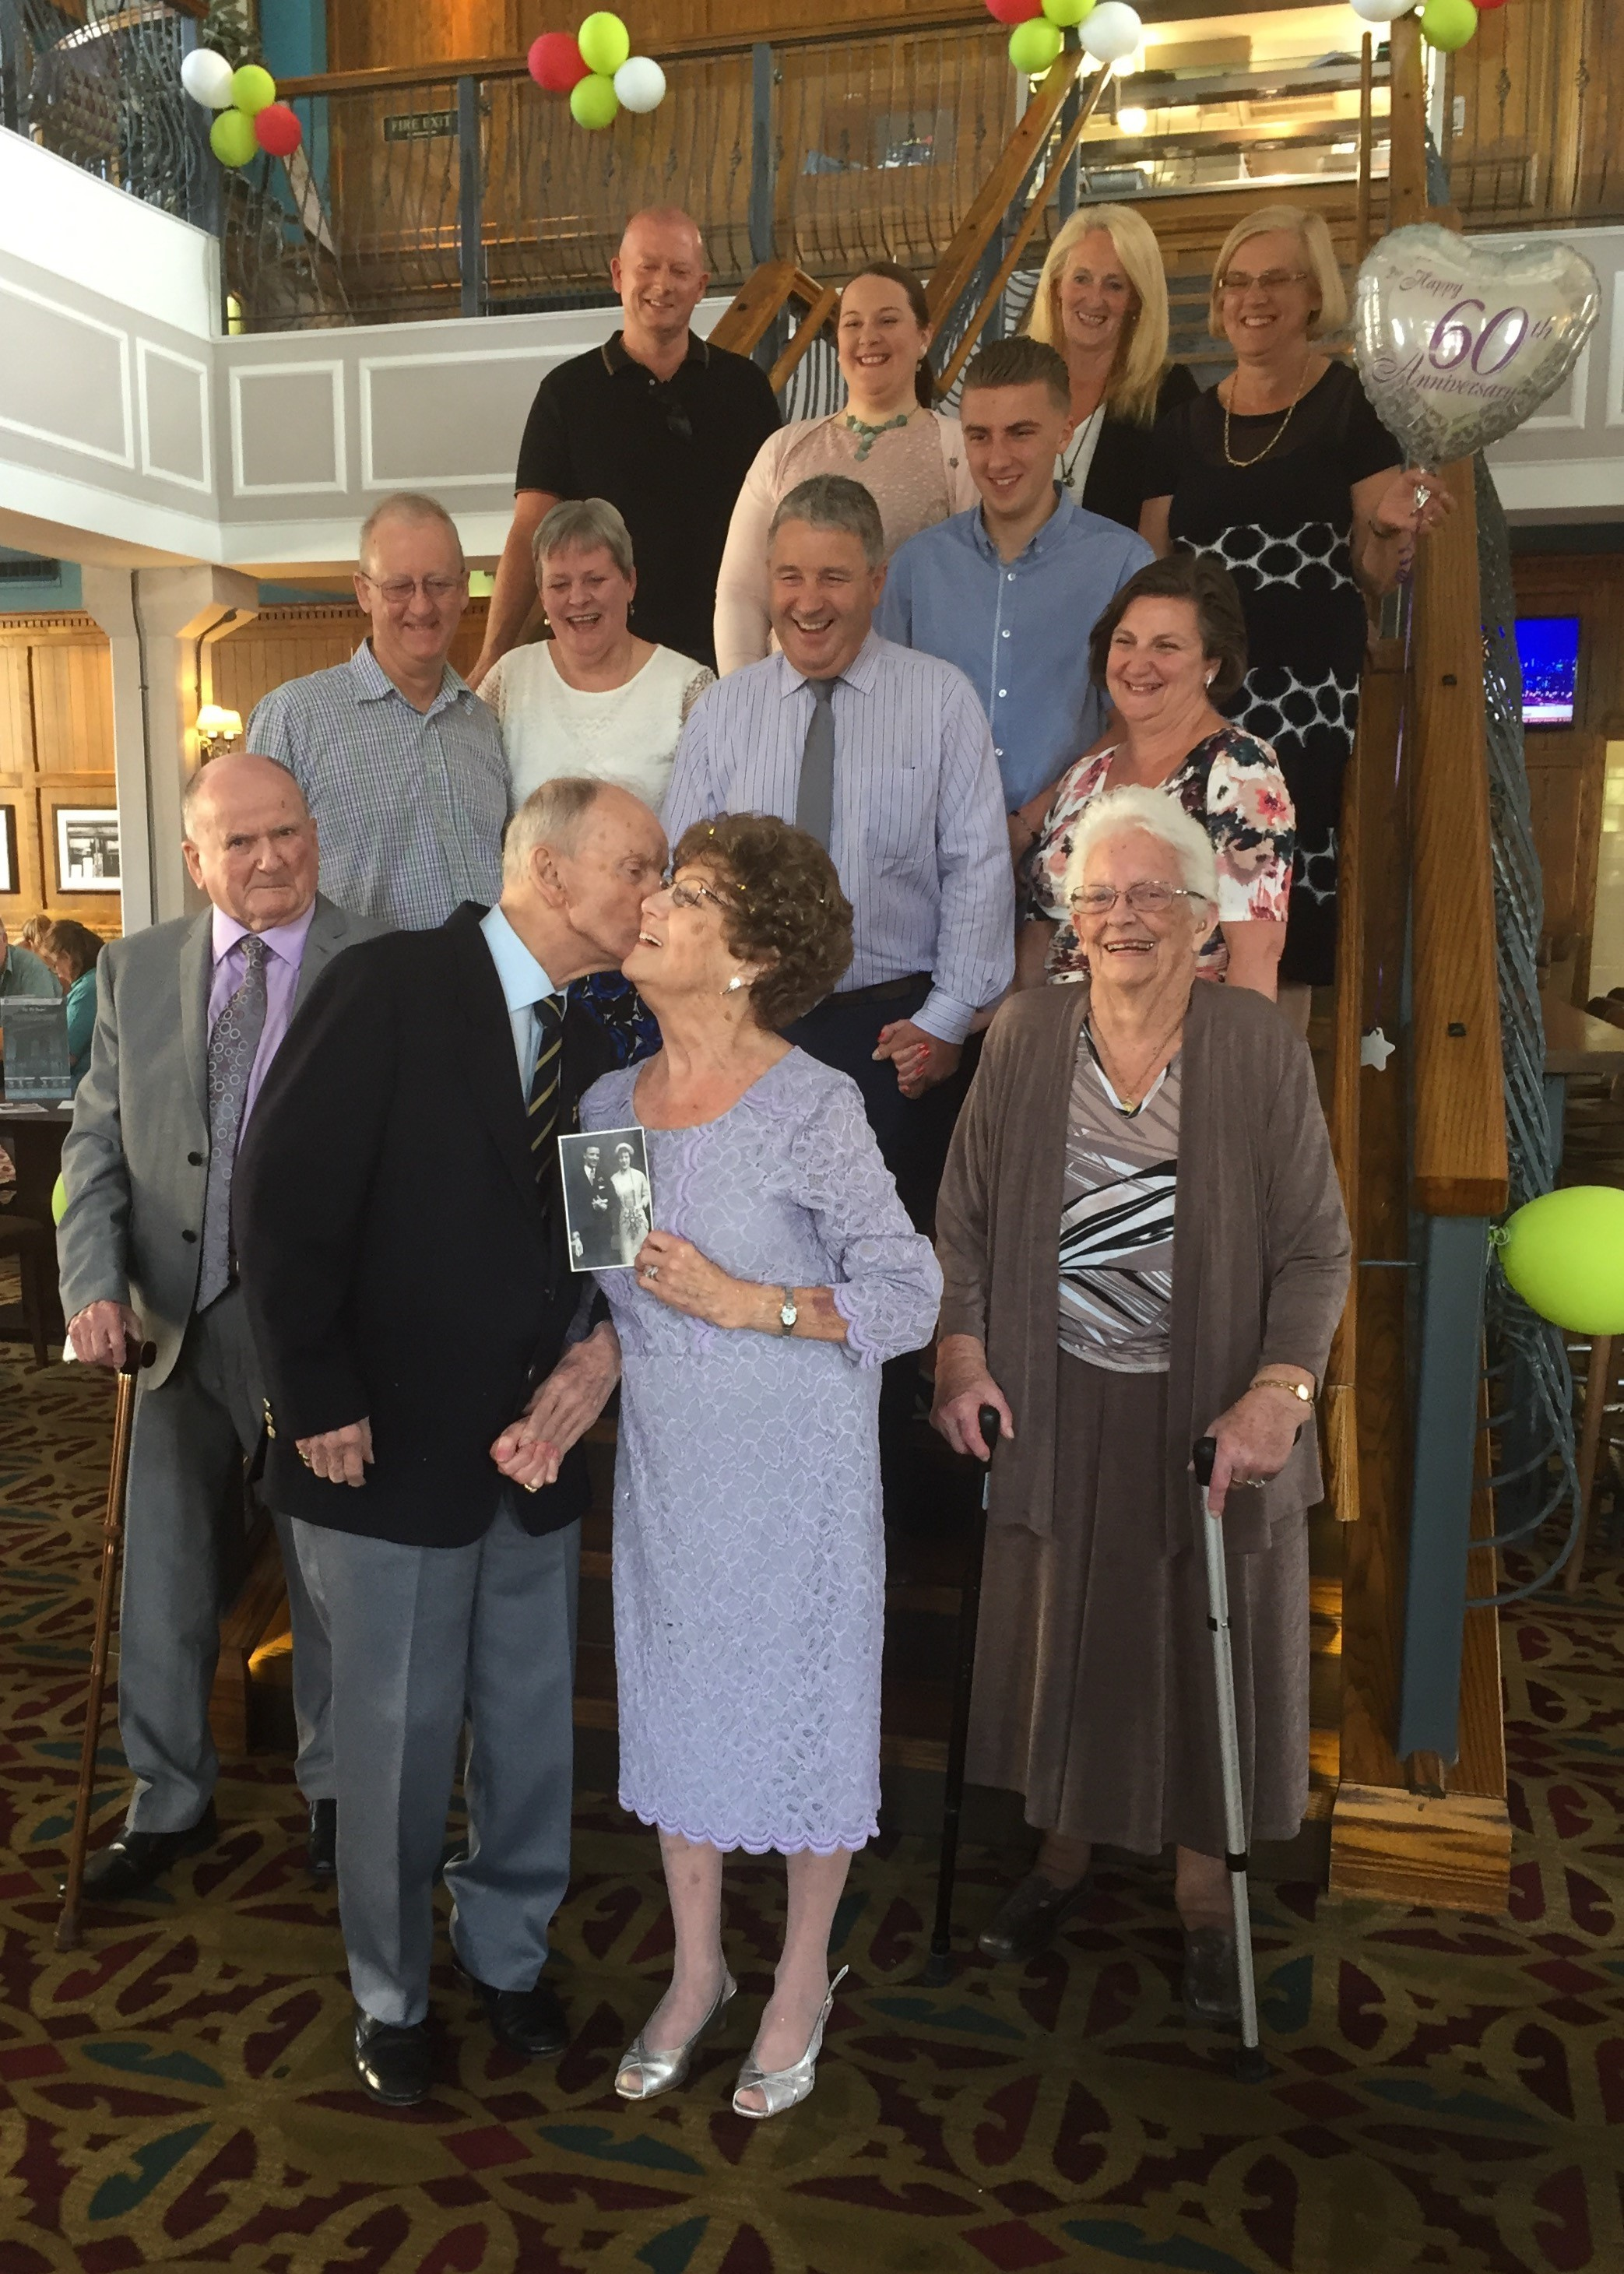 The couple celebrated their 60th wedding anniversary in The Old Chapel